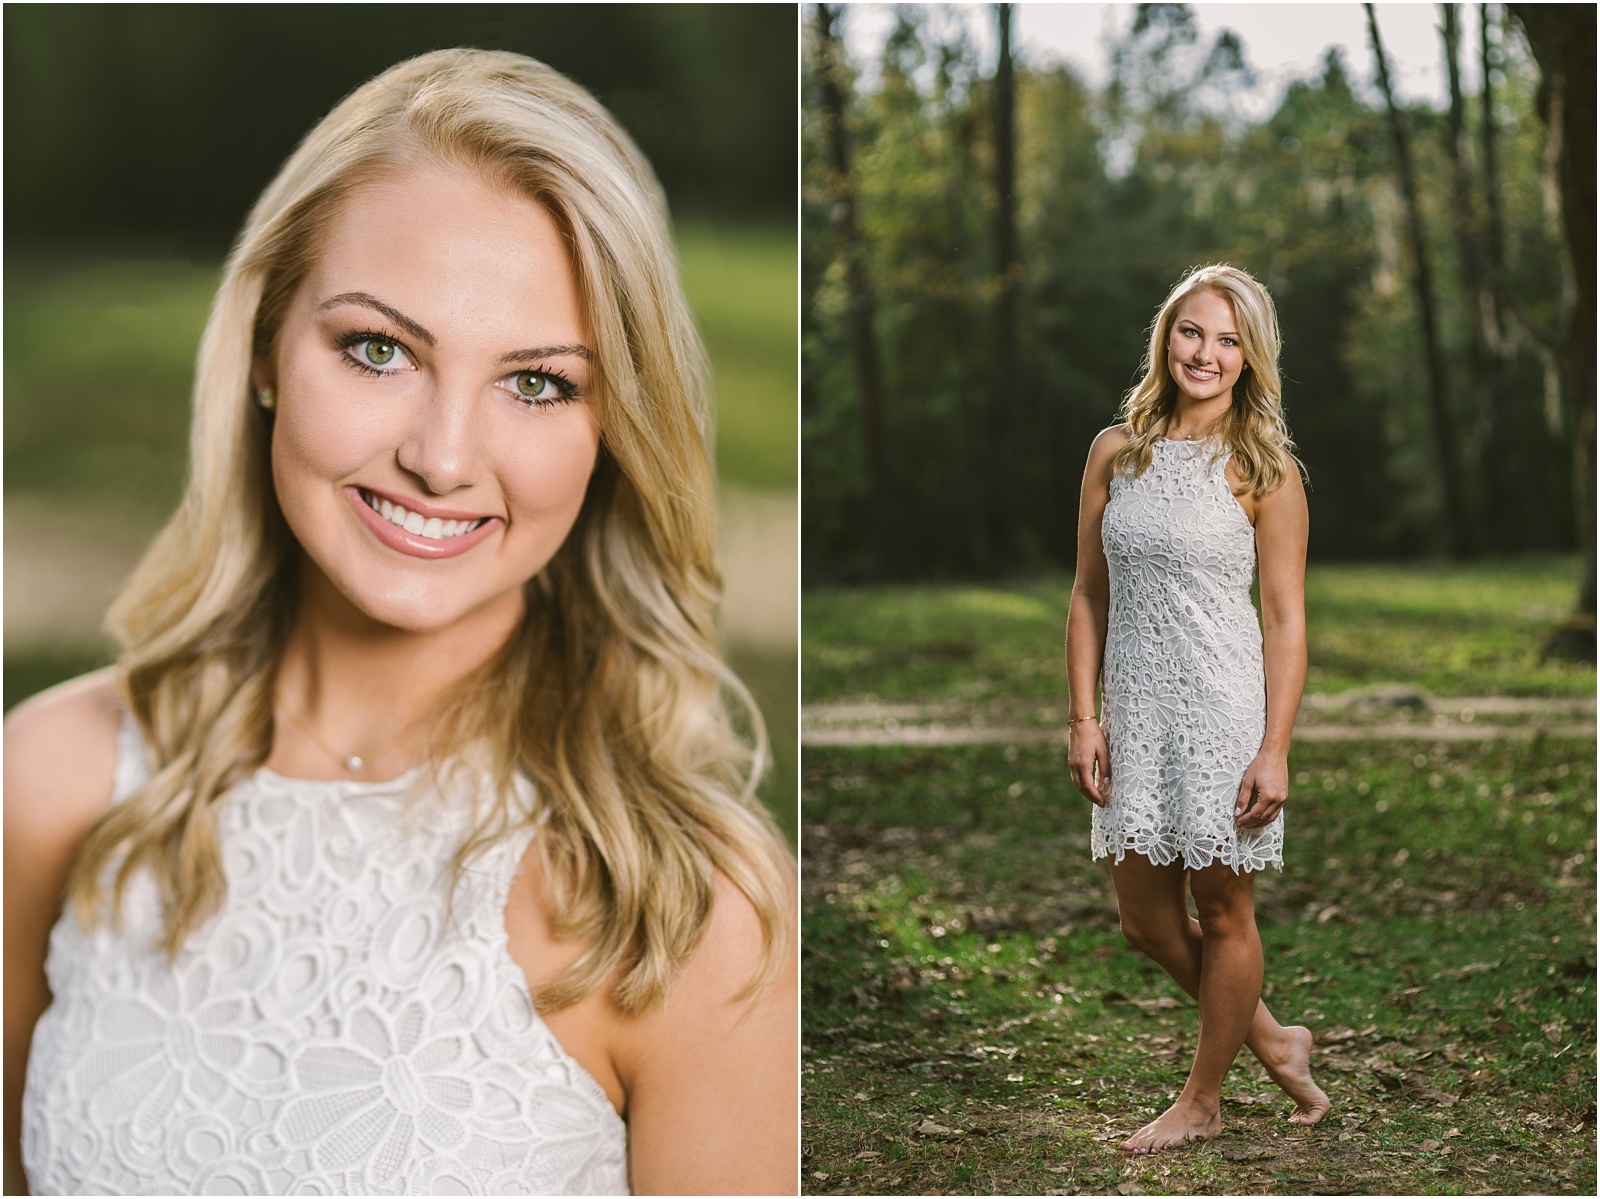 Tallahassee Senior Portrait Photographers